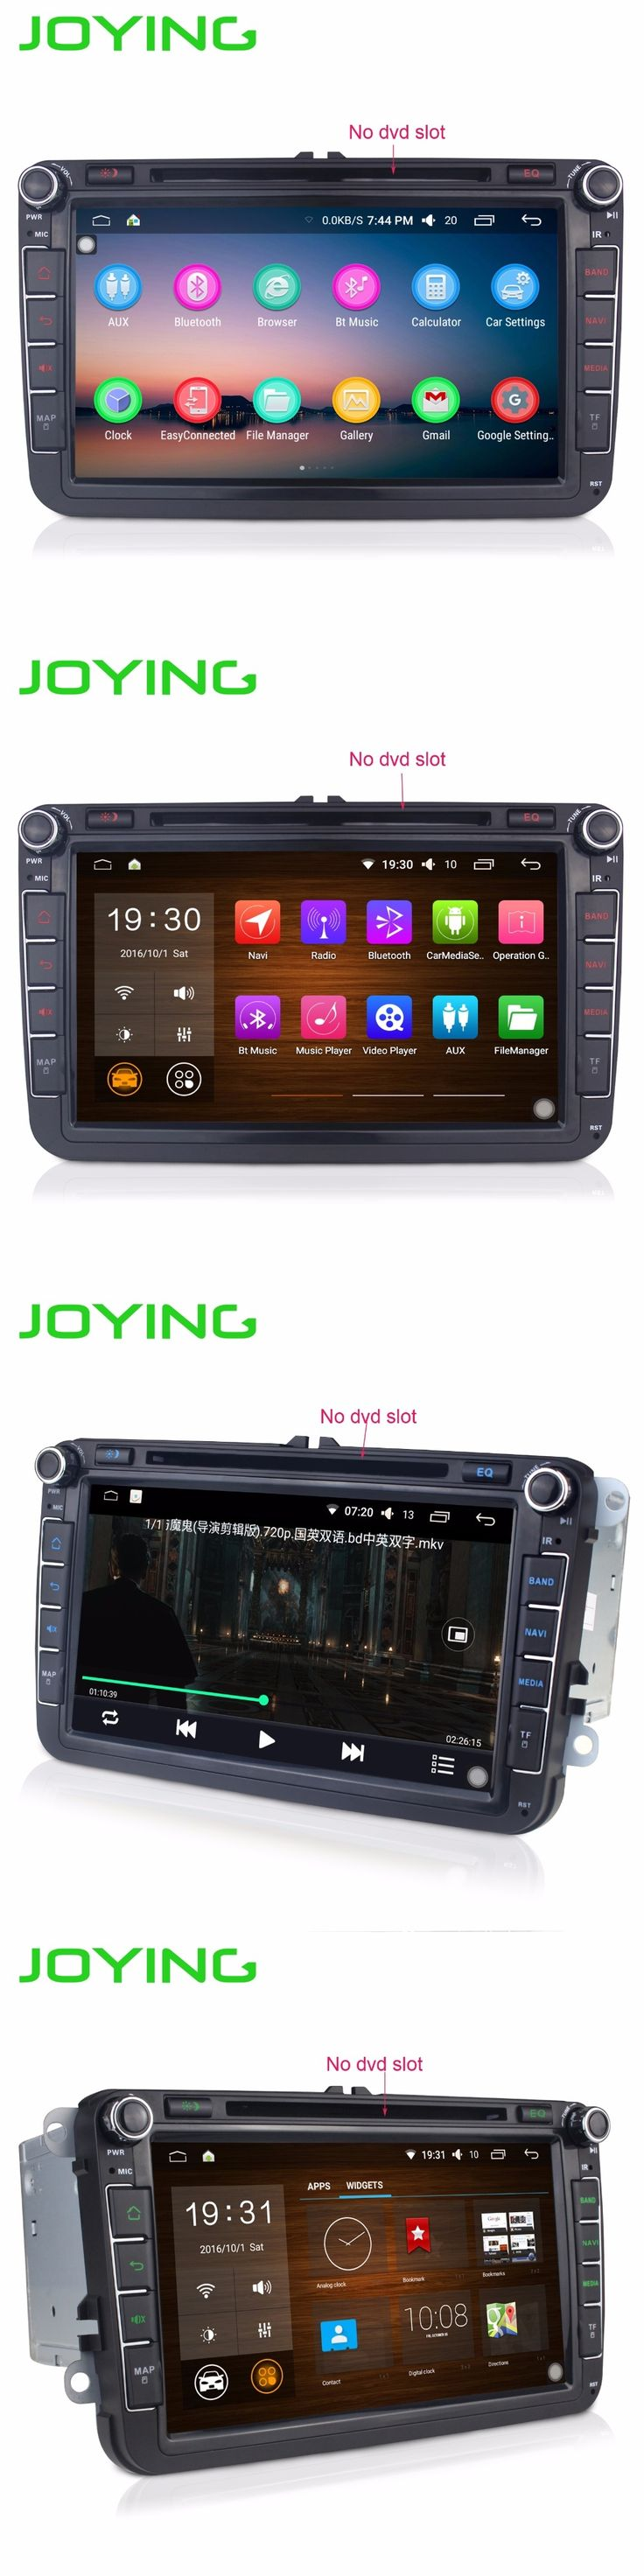 """JOYING 2GB+32GB Android 5.1  Double 2 DIN 8""""  For VW Volkswagen Touran Car Radio Stereo Quad Core Head Unit Support PIP OBD DVR"""